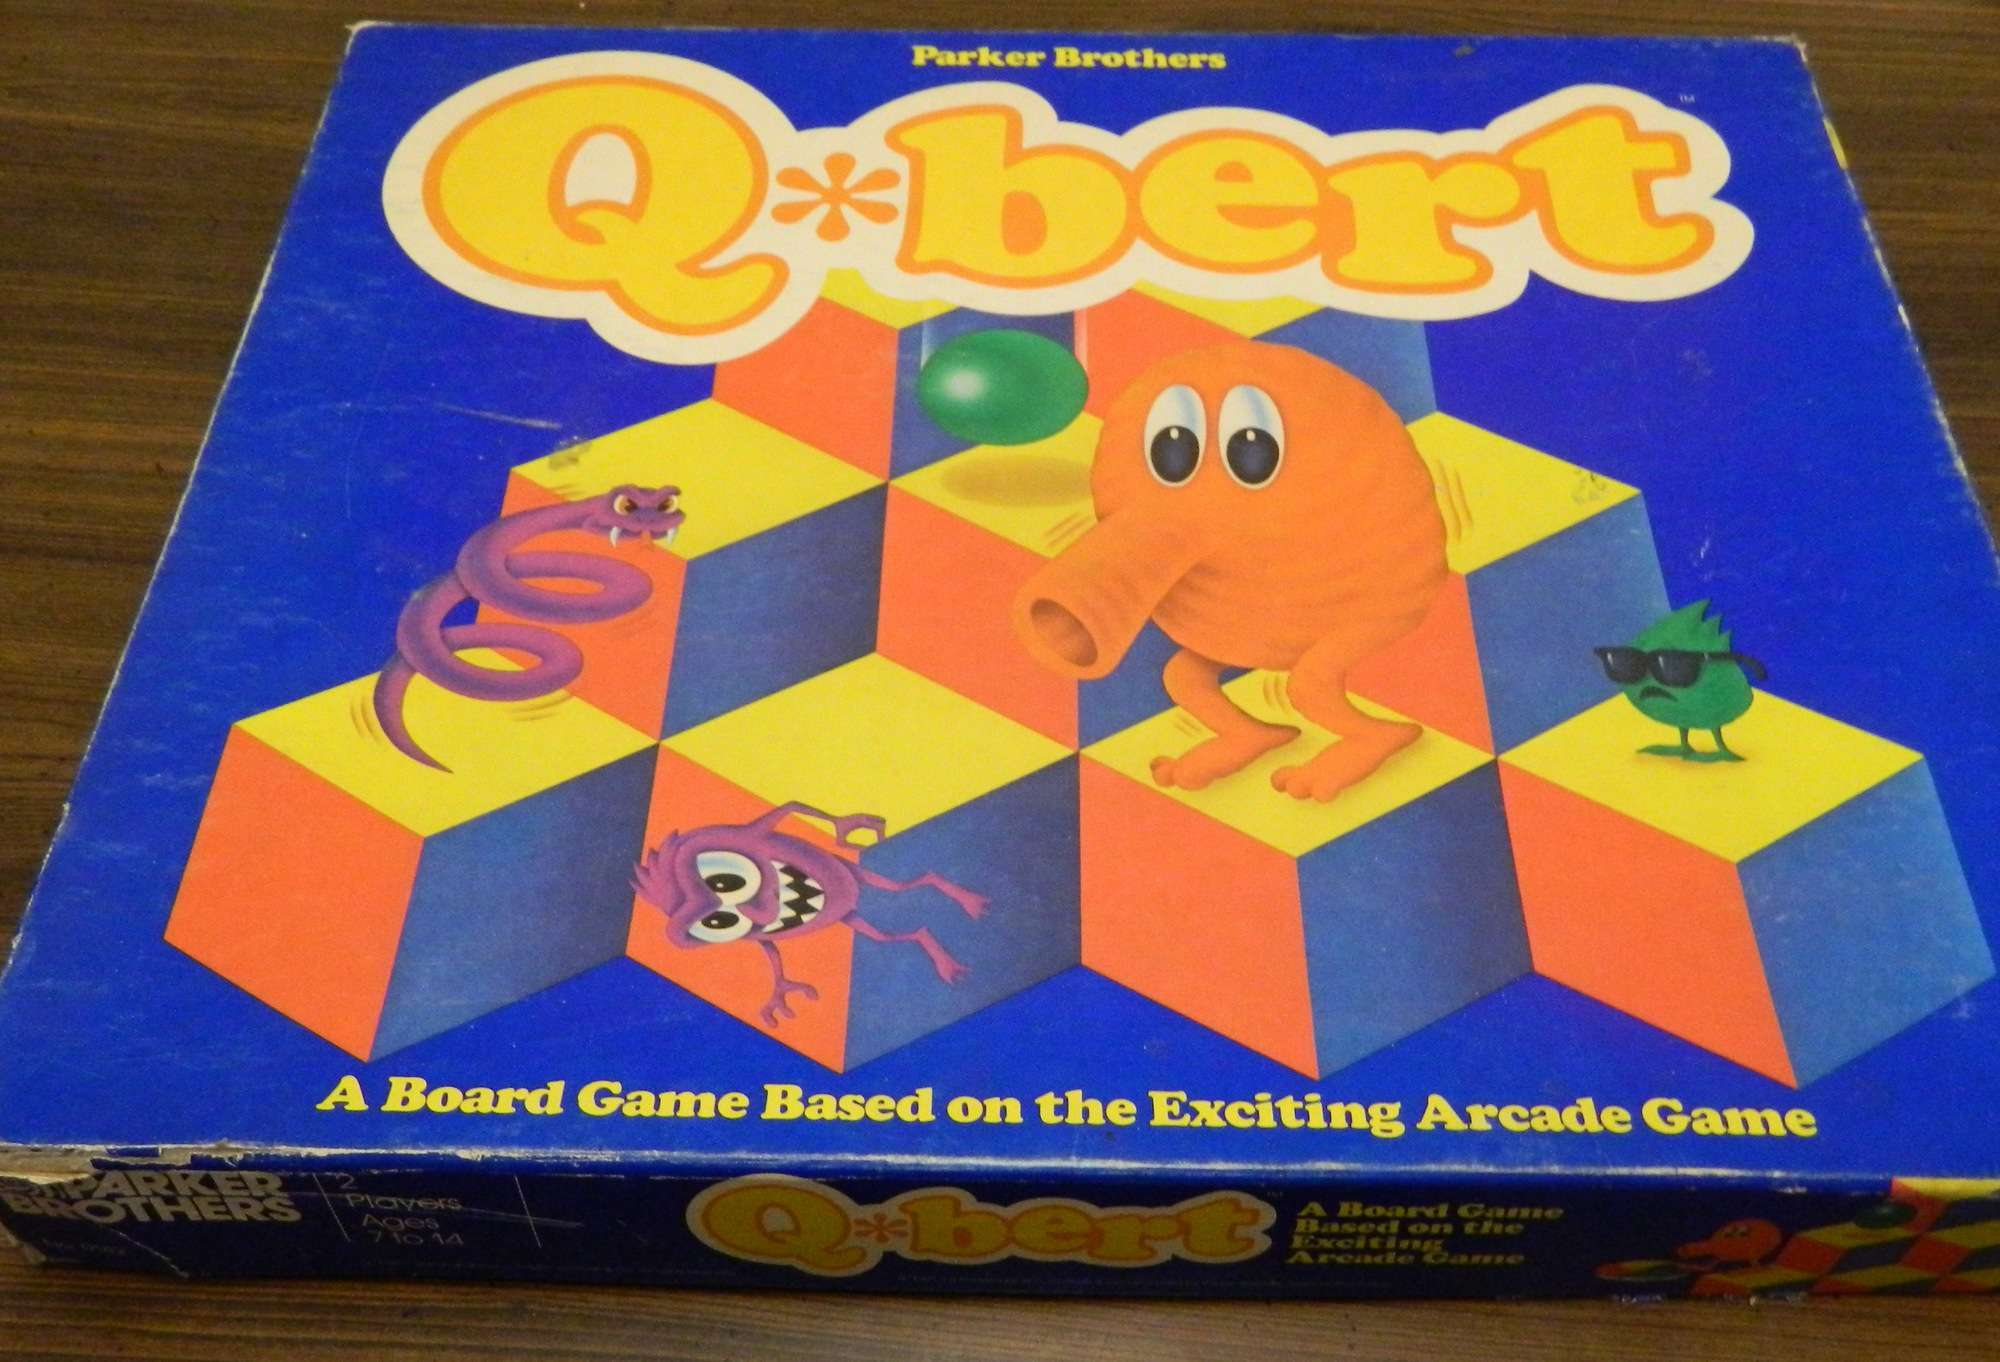 Box for Q*bert Game